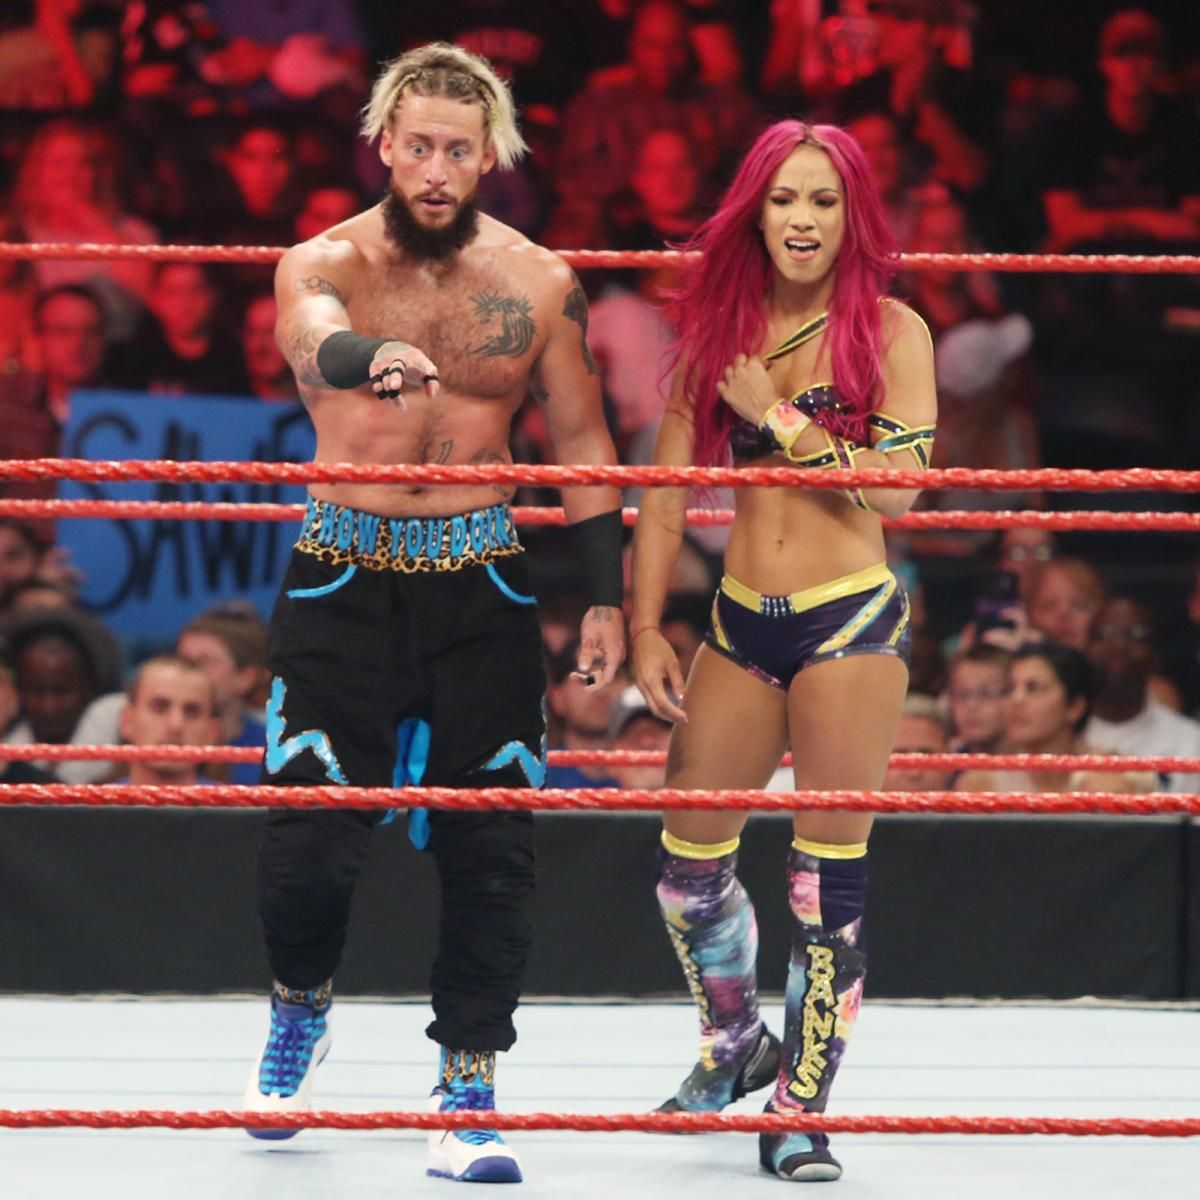 Enzo Amore   Sasha Banks vs. Chris Jericho   Charlotte  photos acb156562